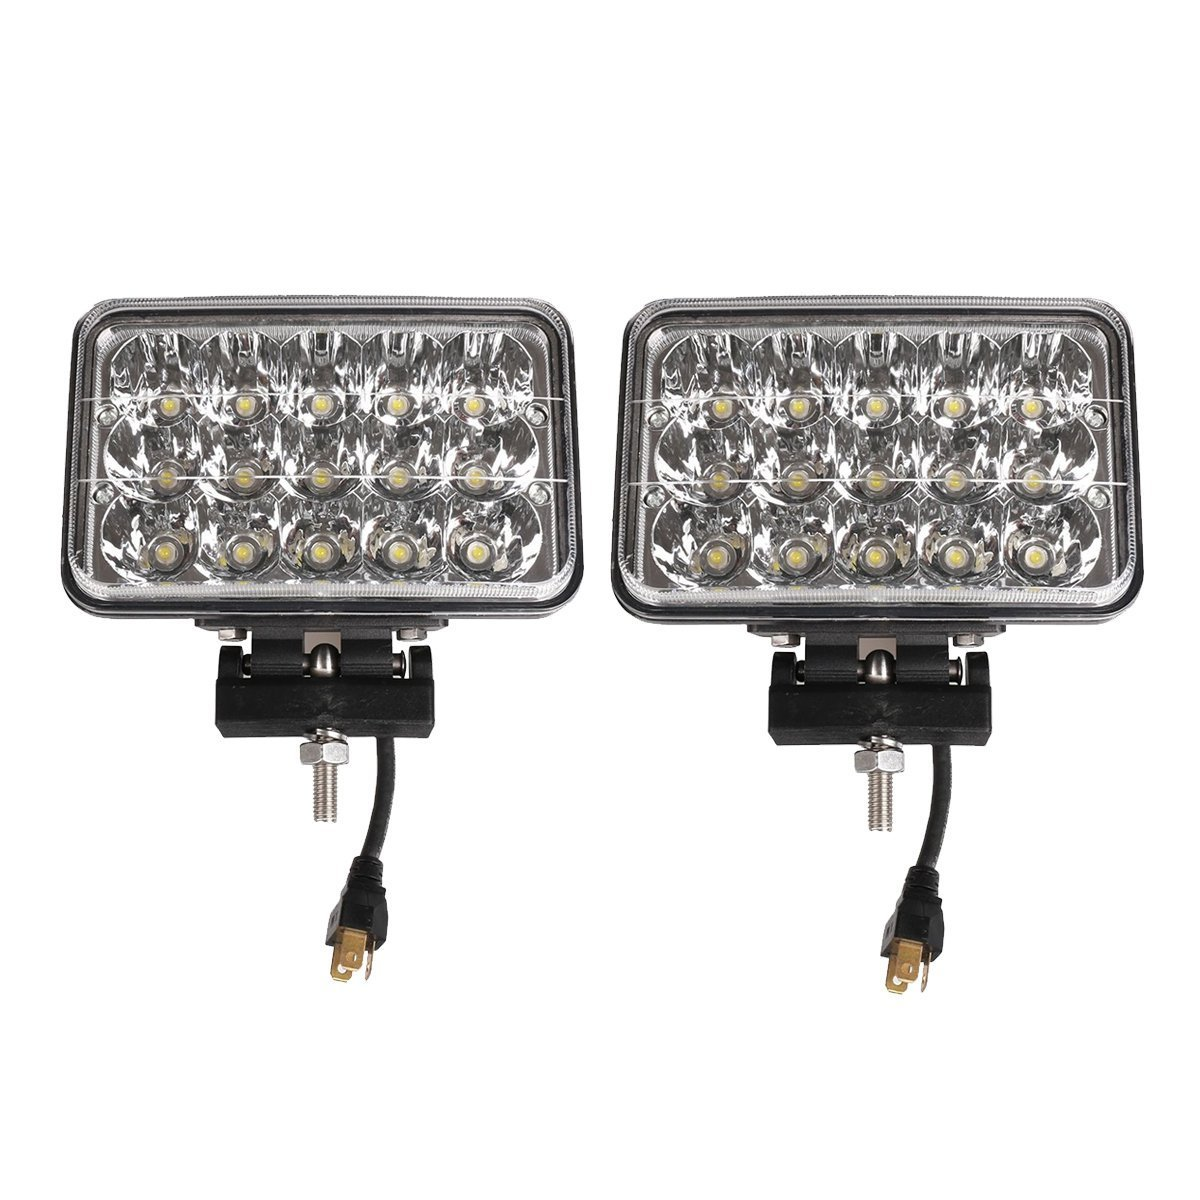 Lightronic Pair 45W Square Clear 4x6 inch LED Headlight Bulb Truck Light Amber Spot High Low Beam Fog Lamp